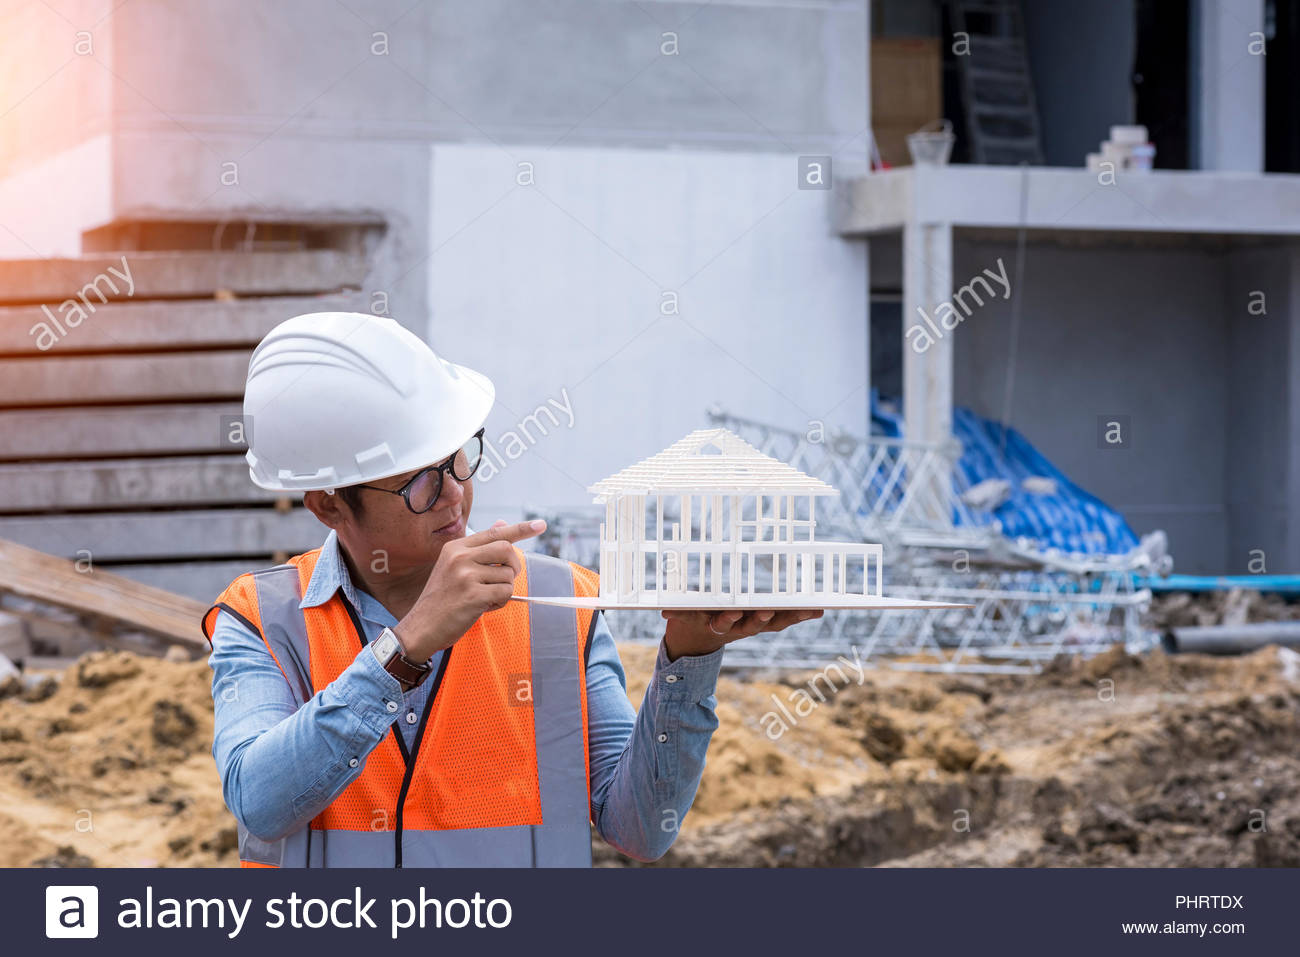 Architect civil engineer working at construction site and checking building model Stock Photo